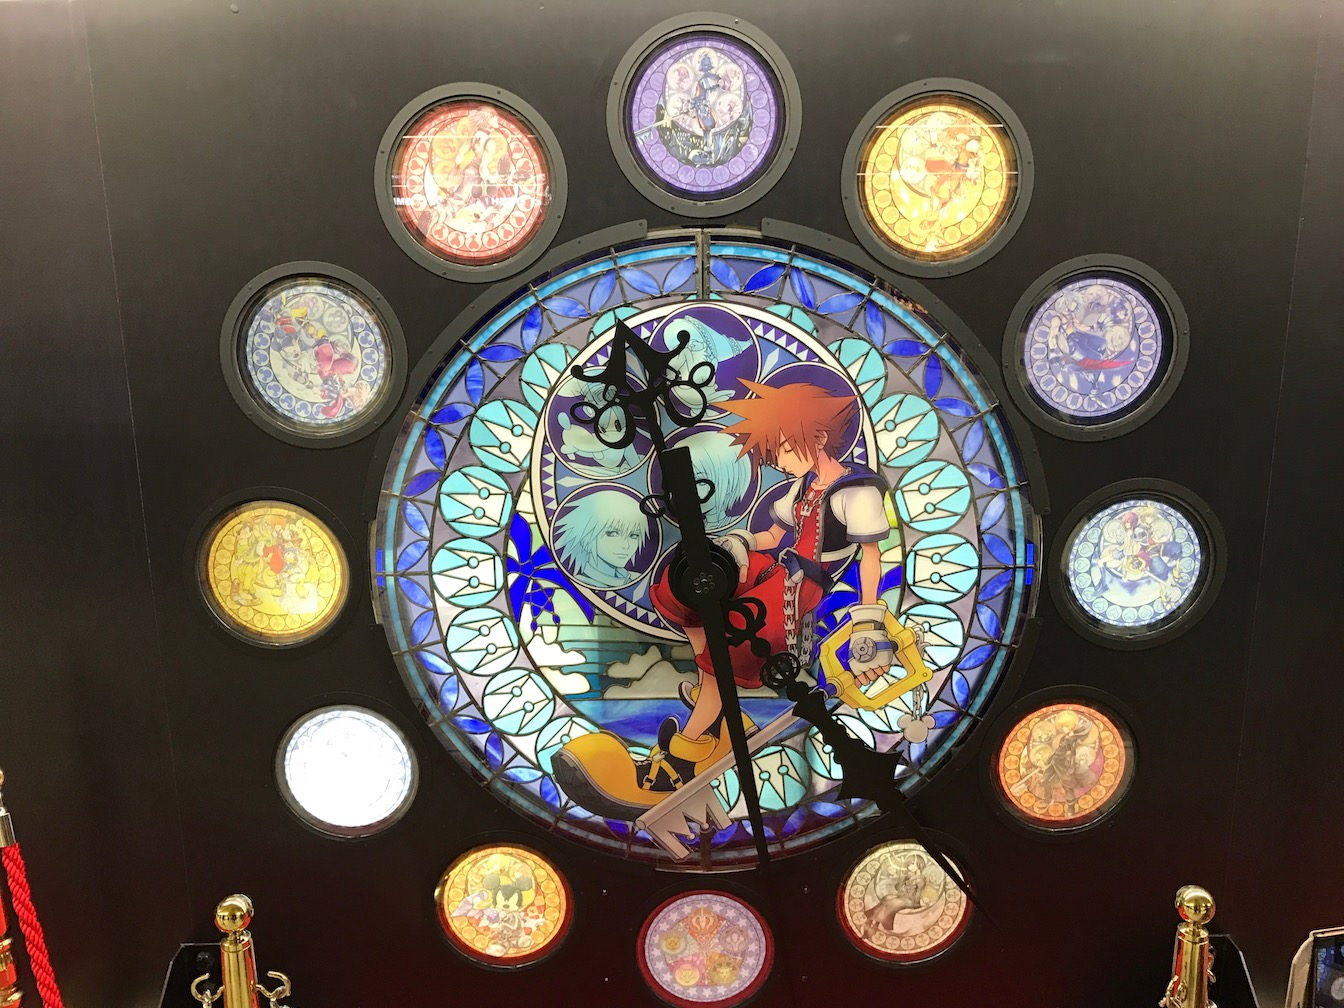 Kingdomhearts 15th anniversary exhibition at shinjuku 5